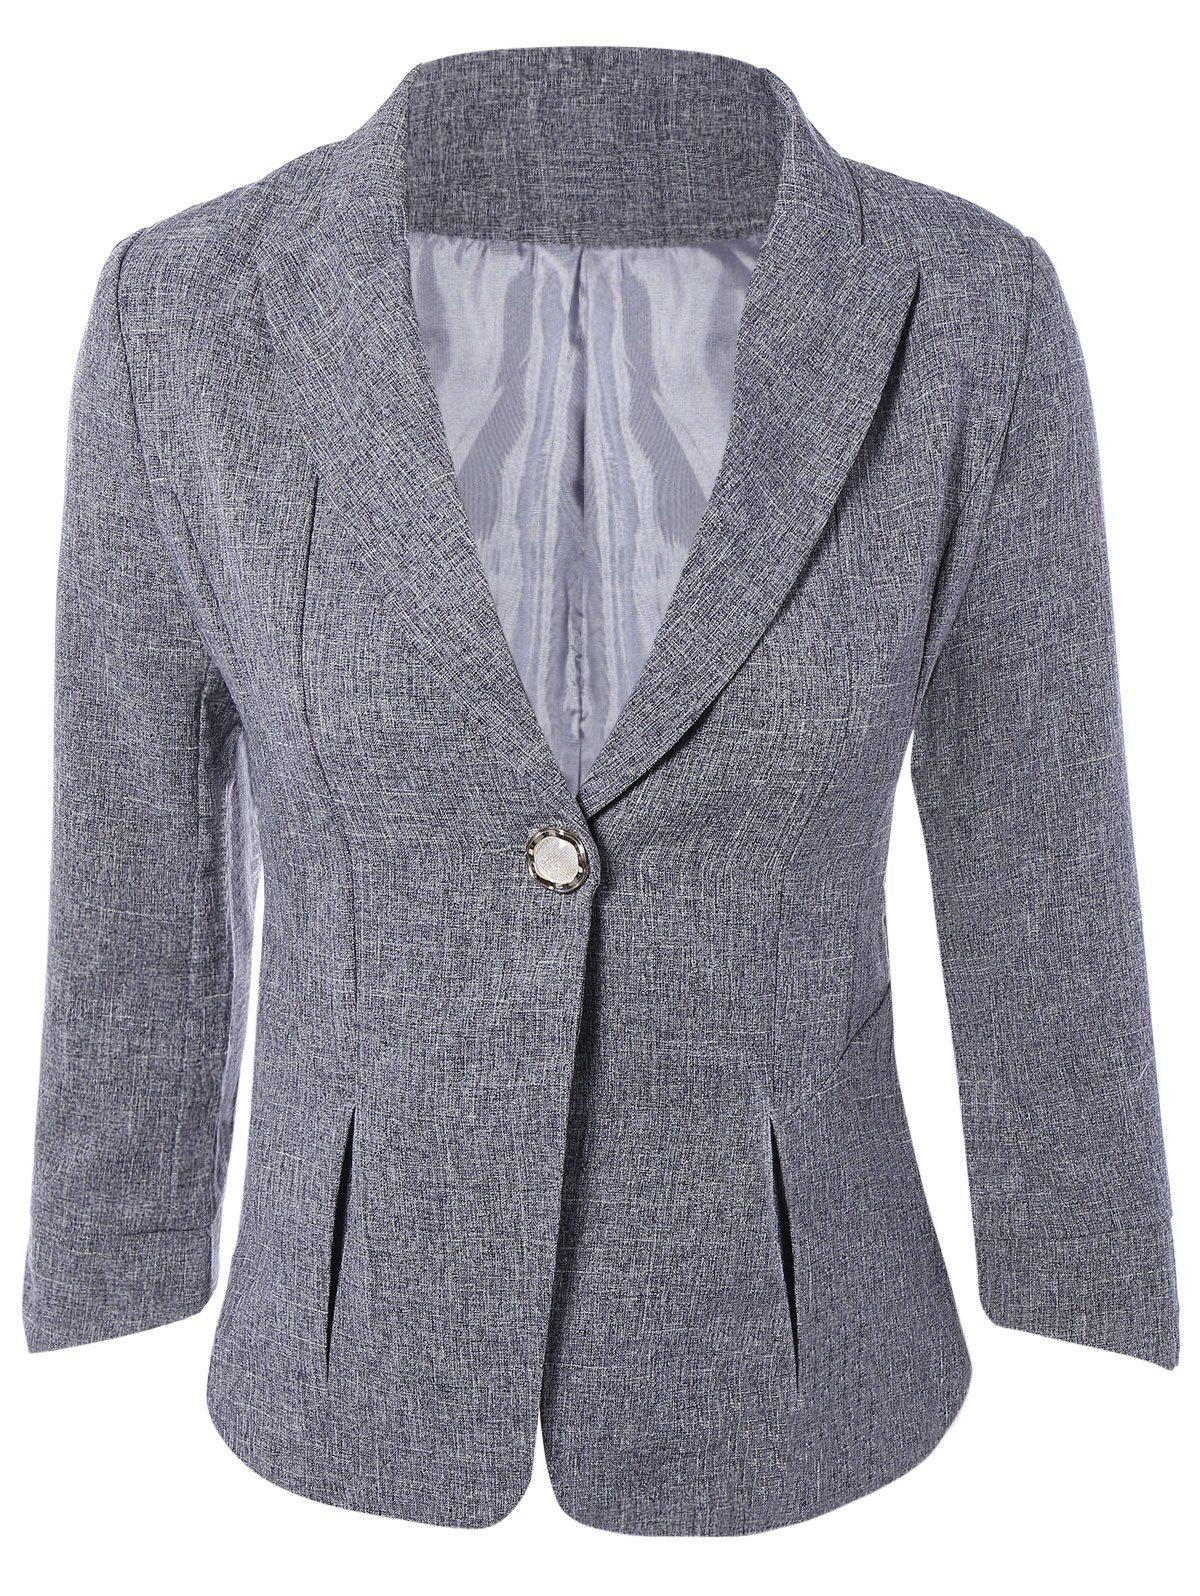 3/4 Sleeve One Button Blazer Minceur - Gris M